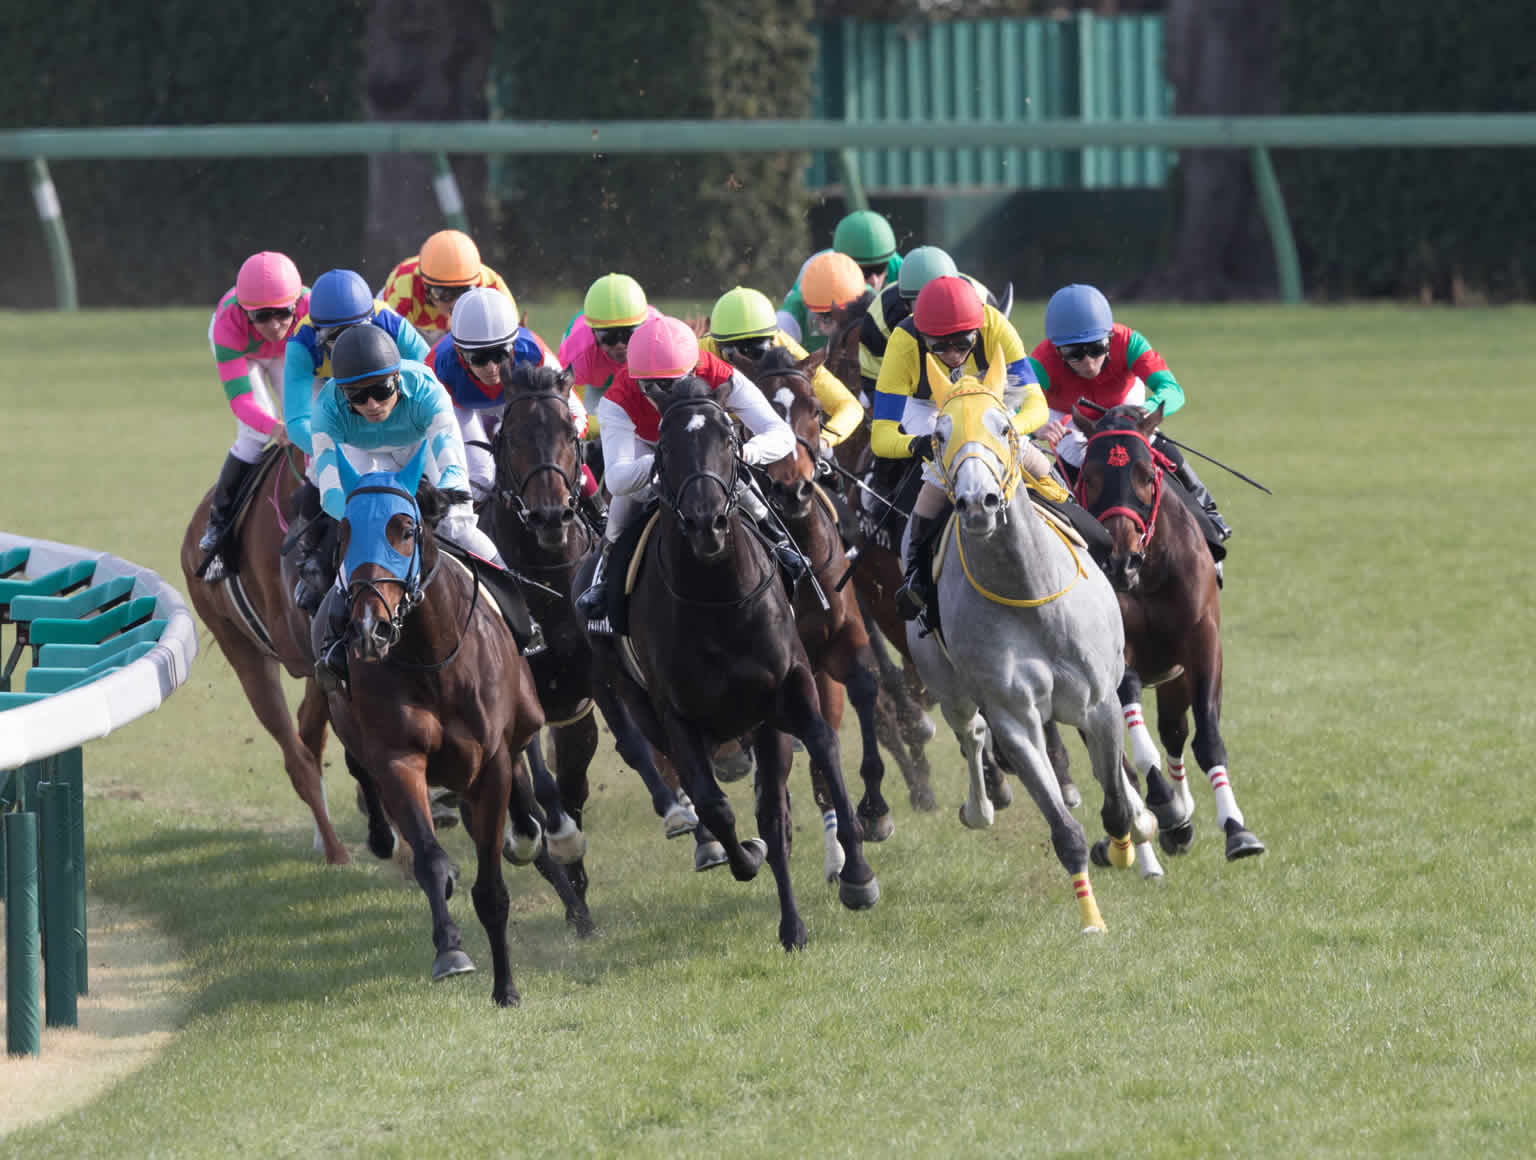 Jockeys dressed in colourful silks racing horses around a track